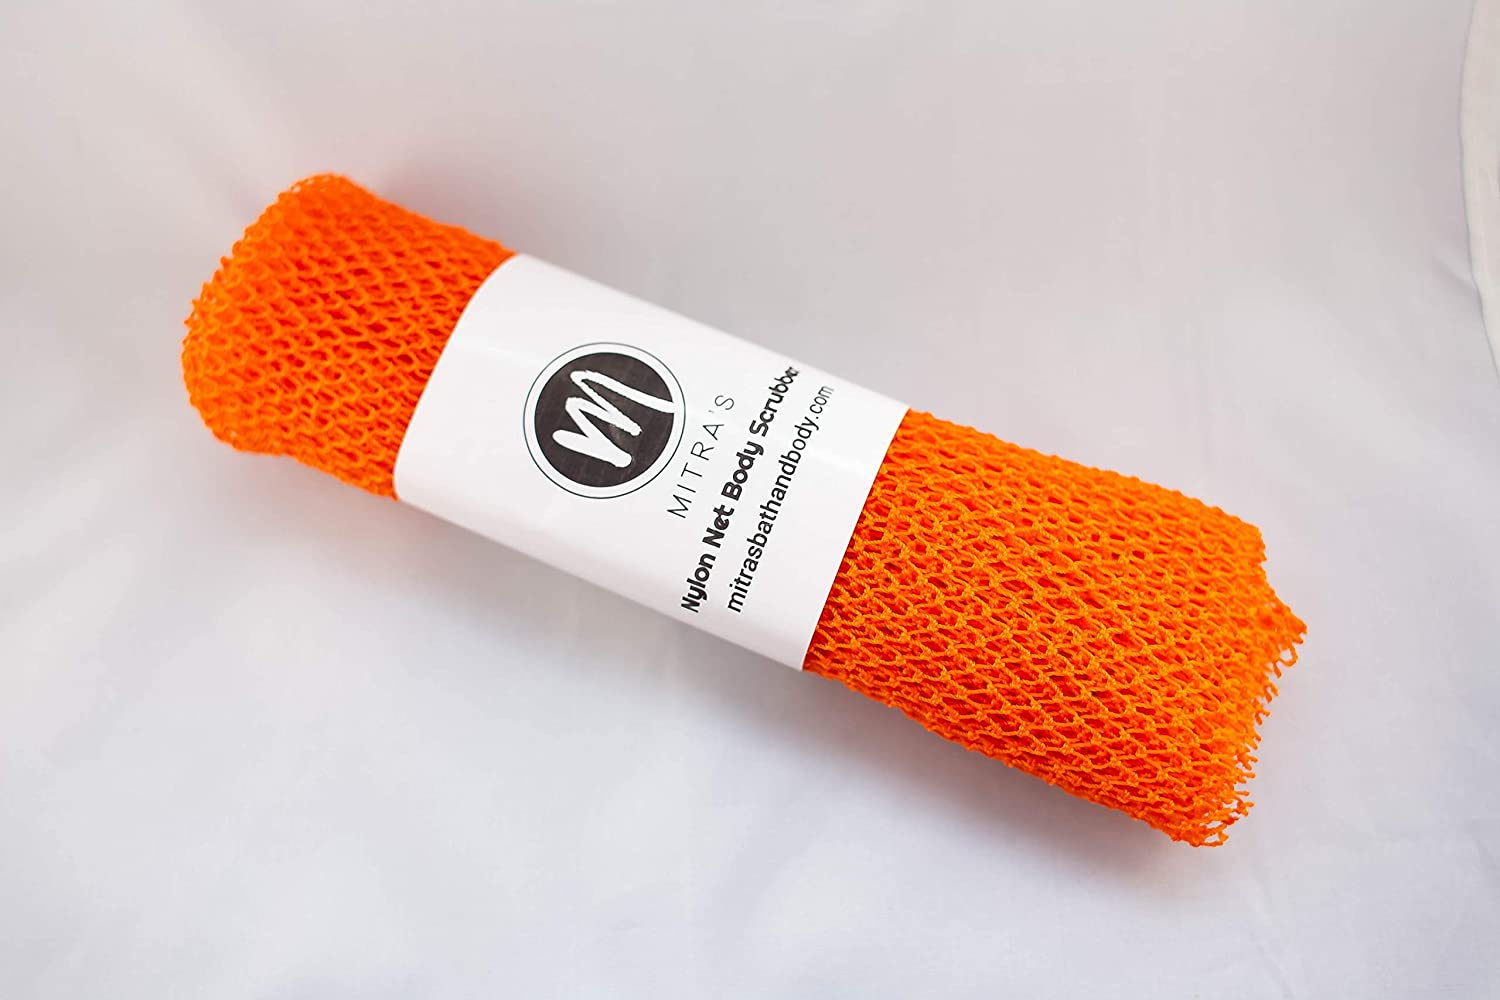 African Net Exfoliating Shower Body Scrubber/Exfoliating Back Scrubber/Skin Smoother/Great for Daily Use - Orange